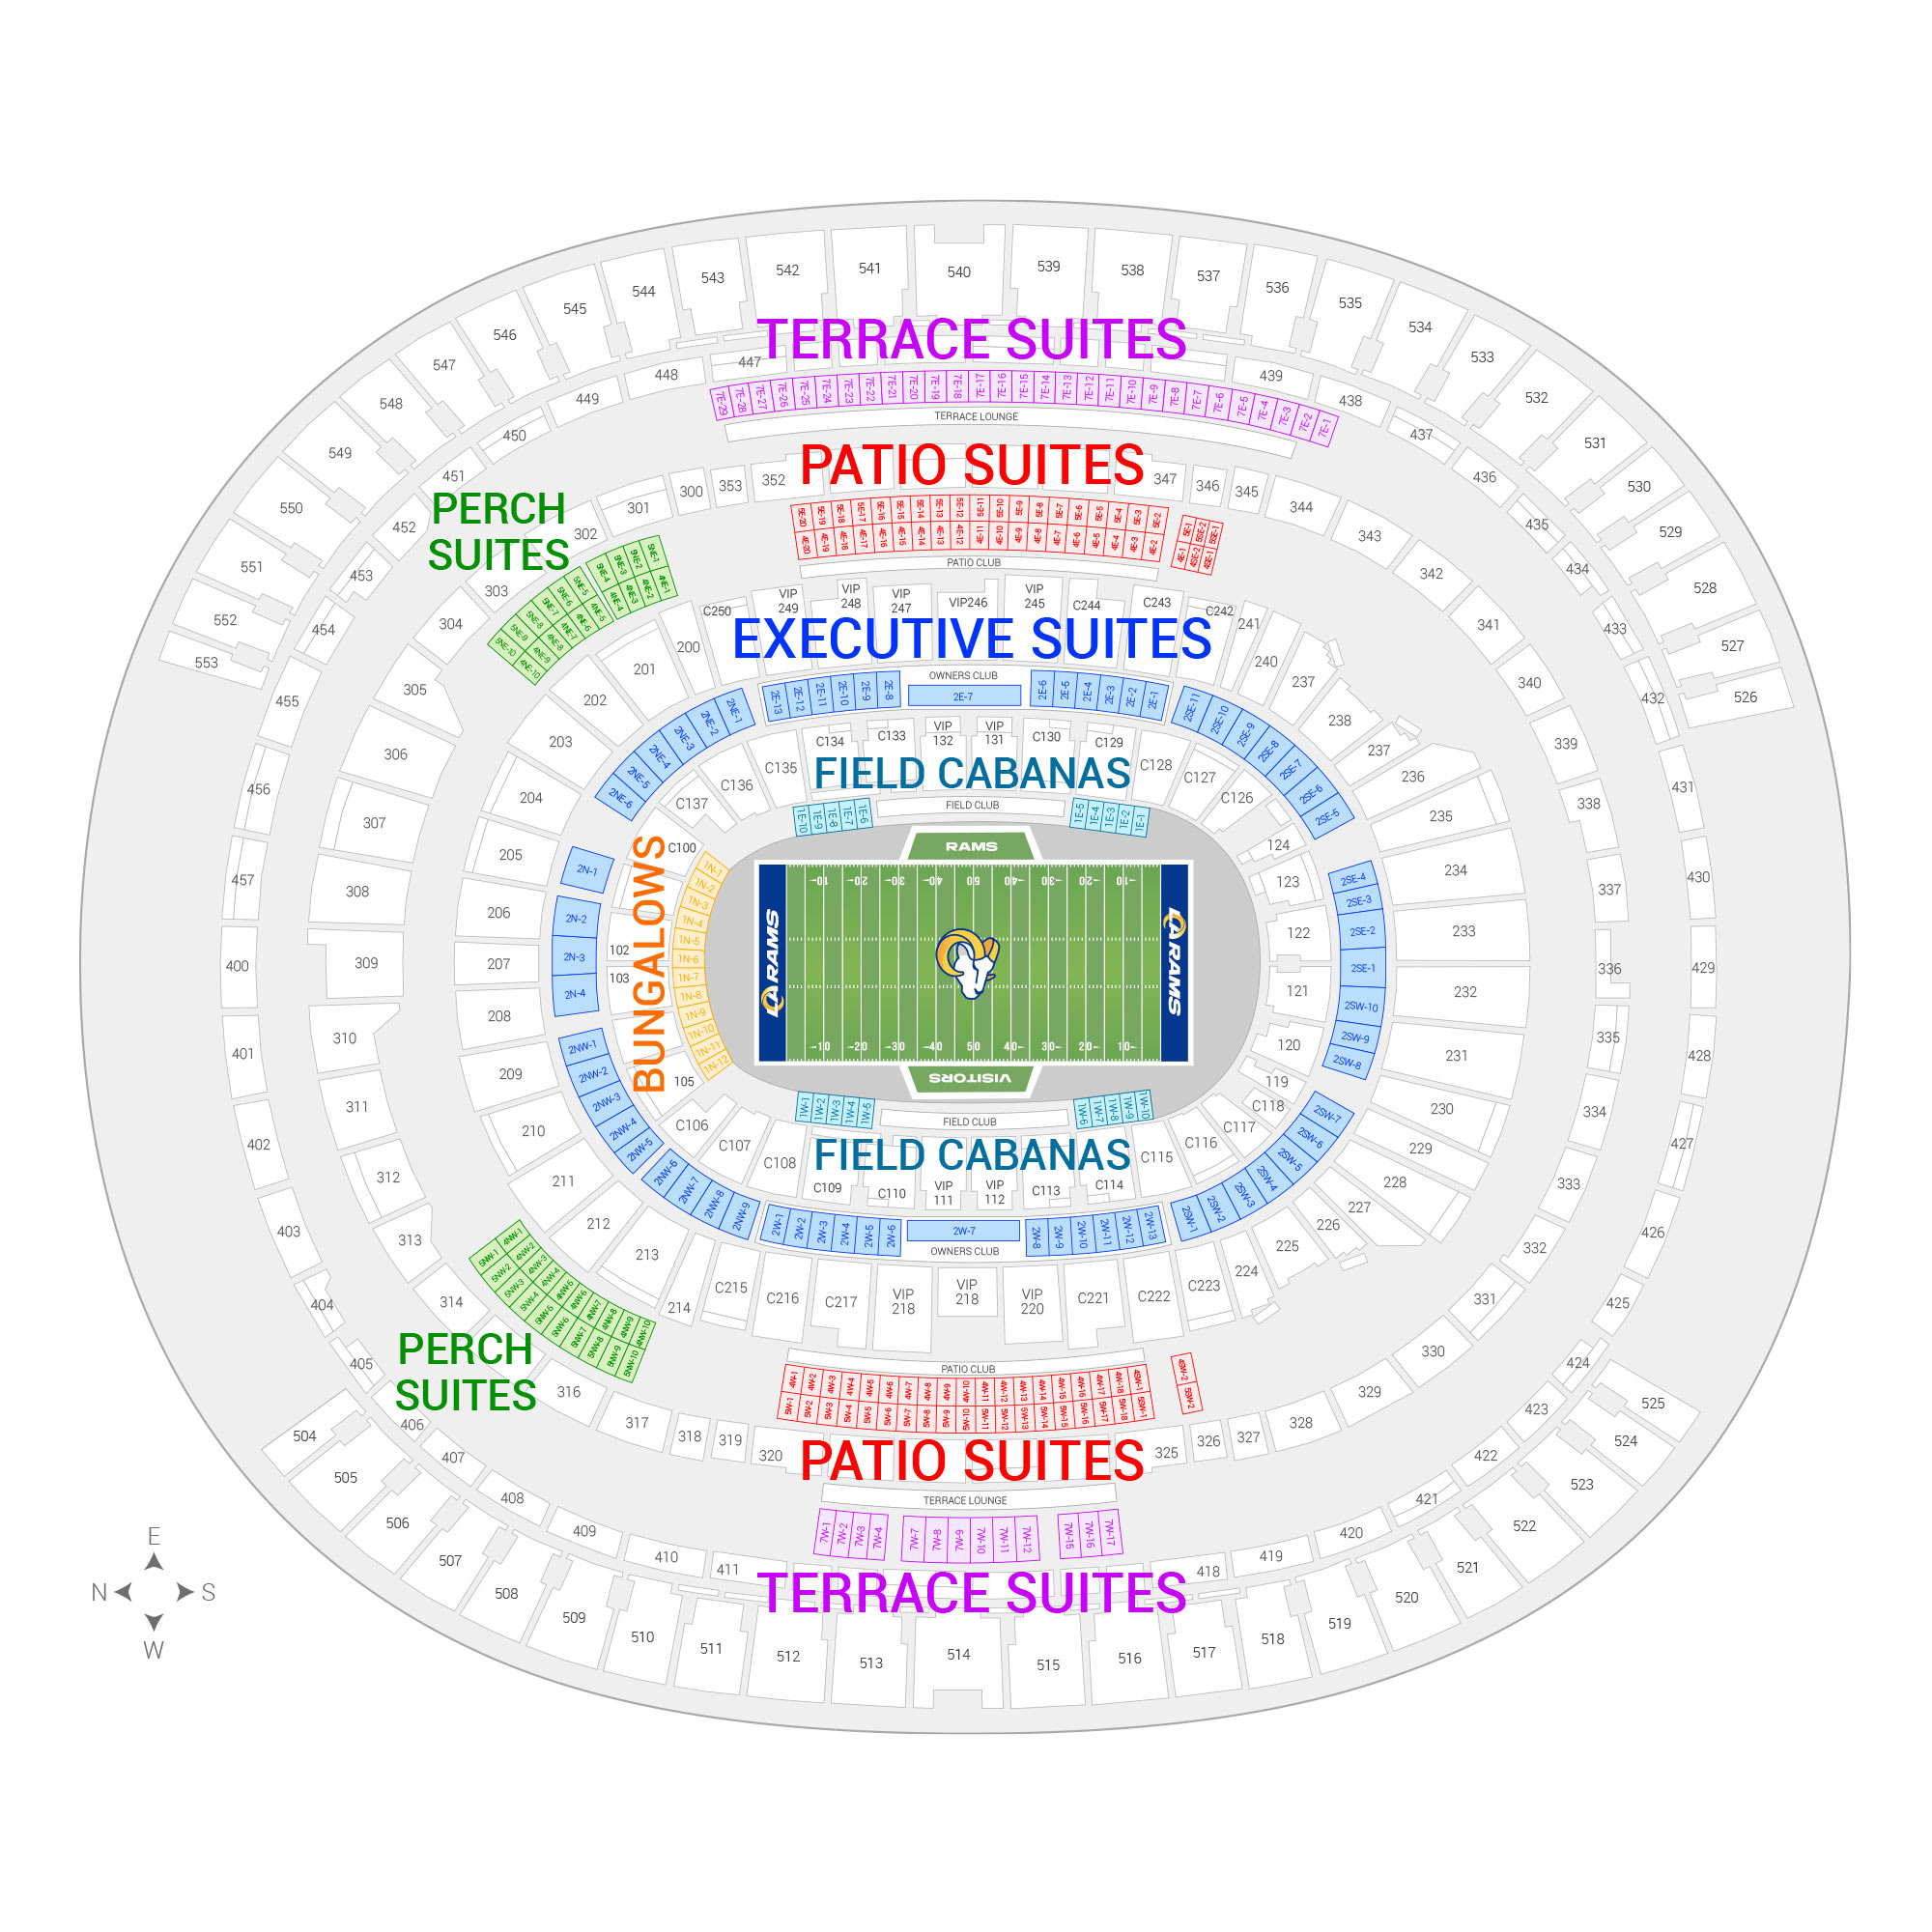 Los Angeles Memorial Coliseum / Los Angeles Rams Suite Map and Seating Chart